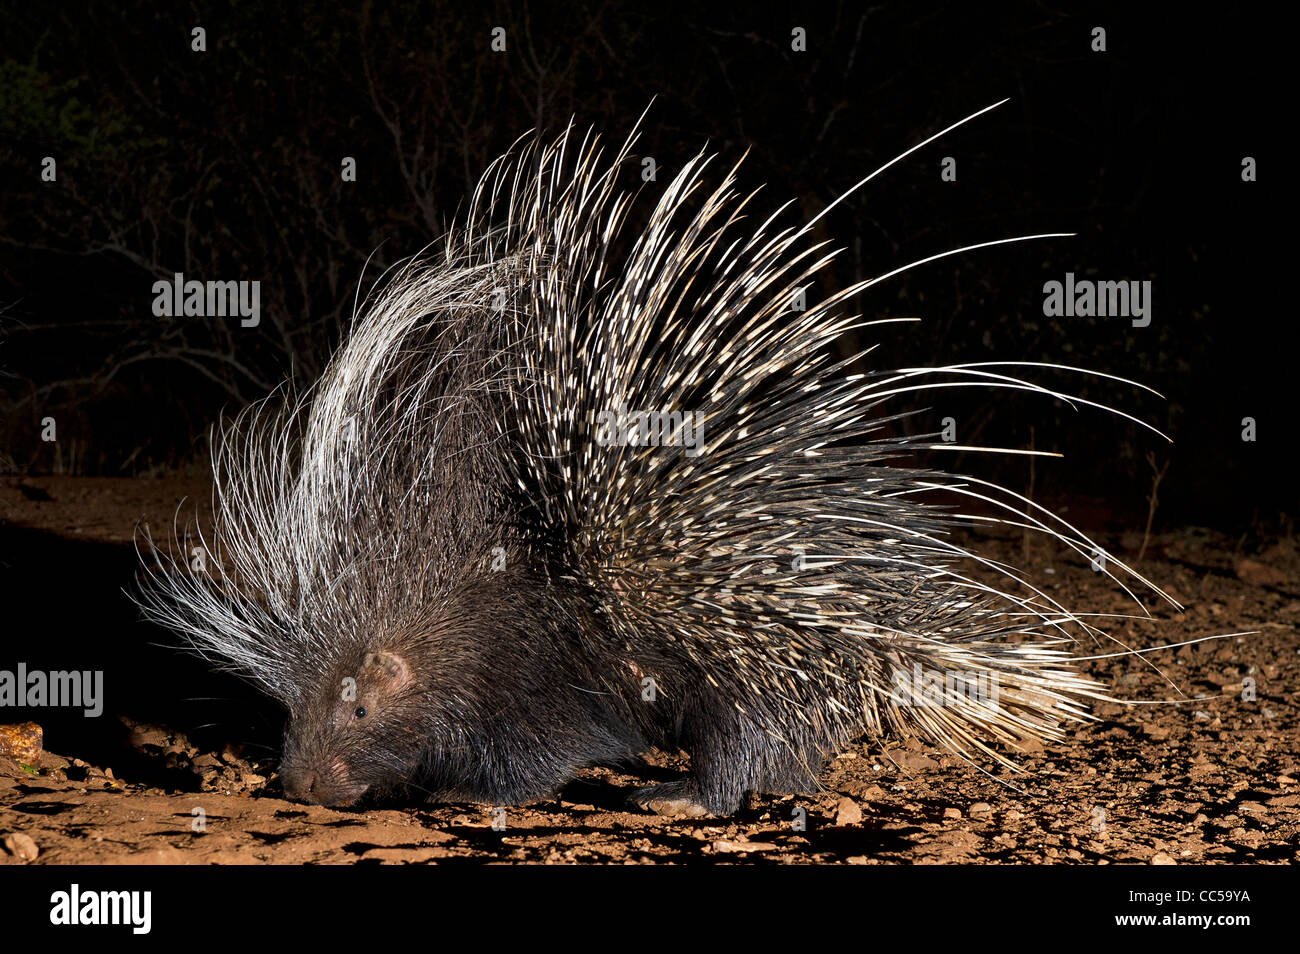 A Porcupine looking for food at night - Stock Image